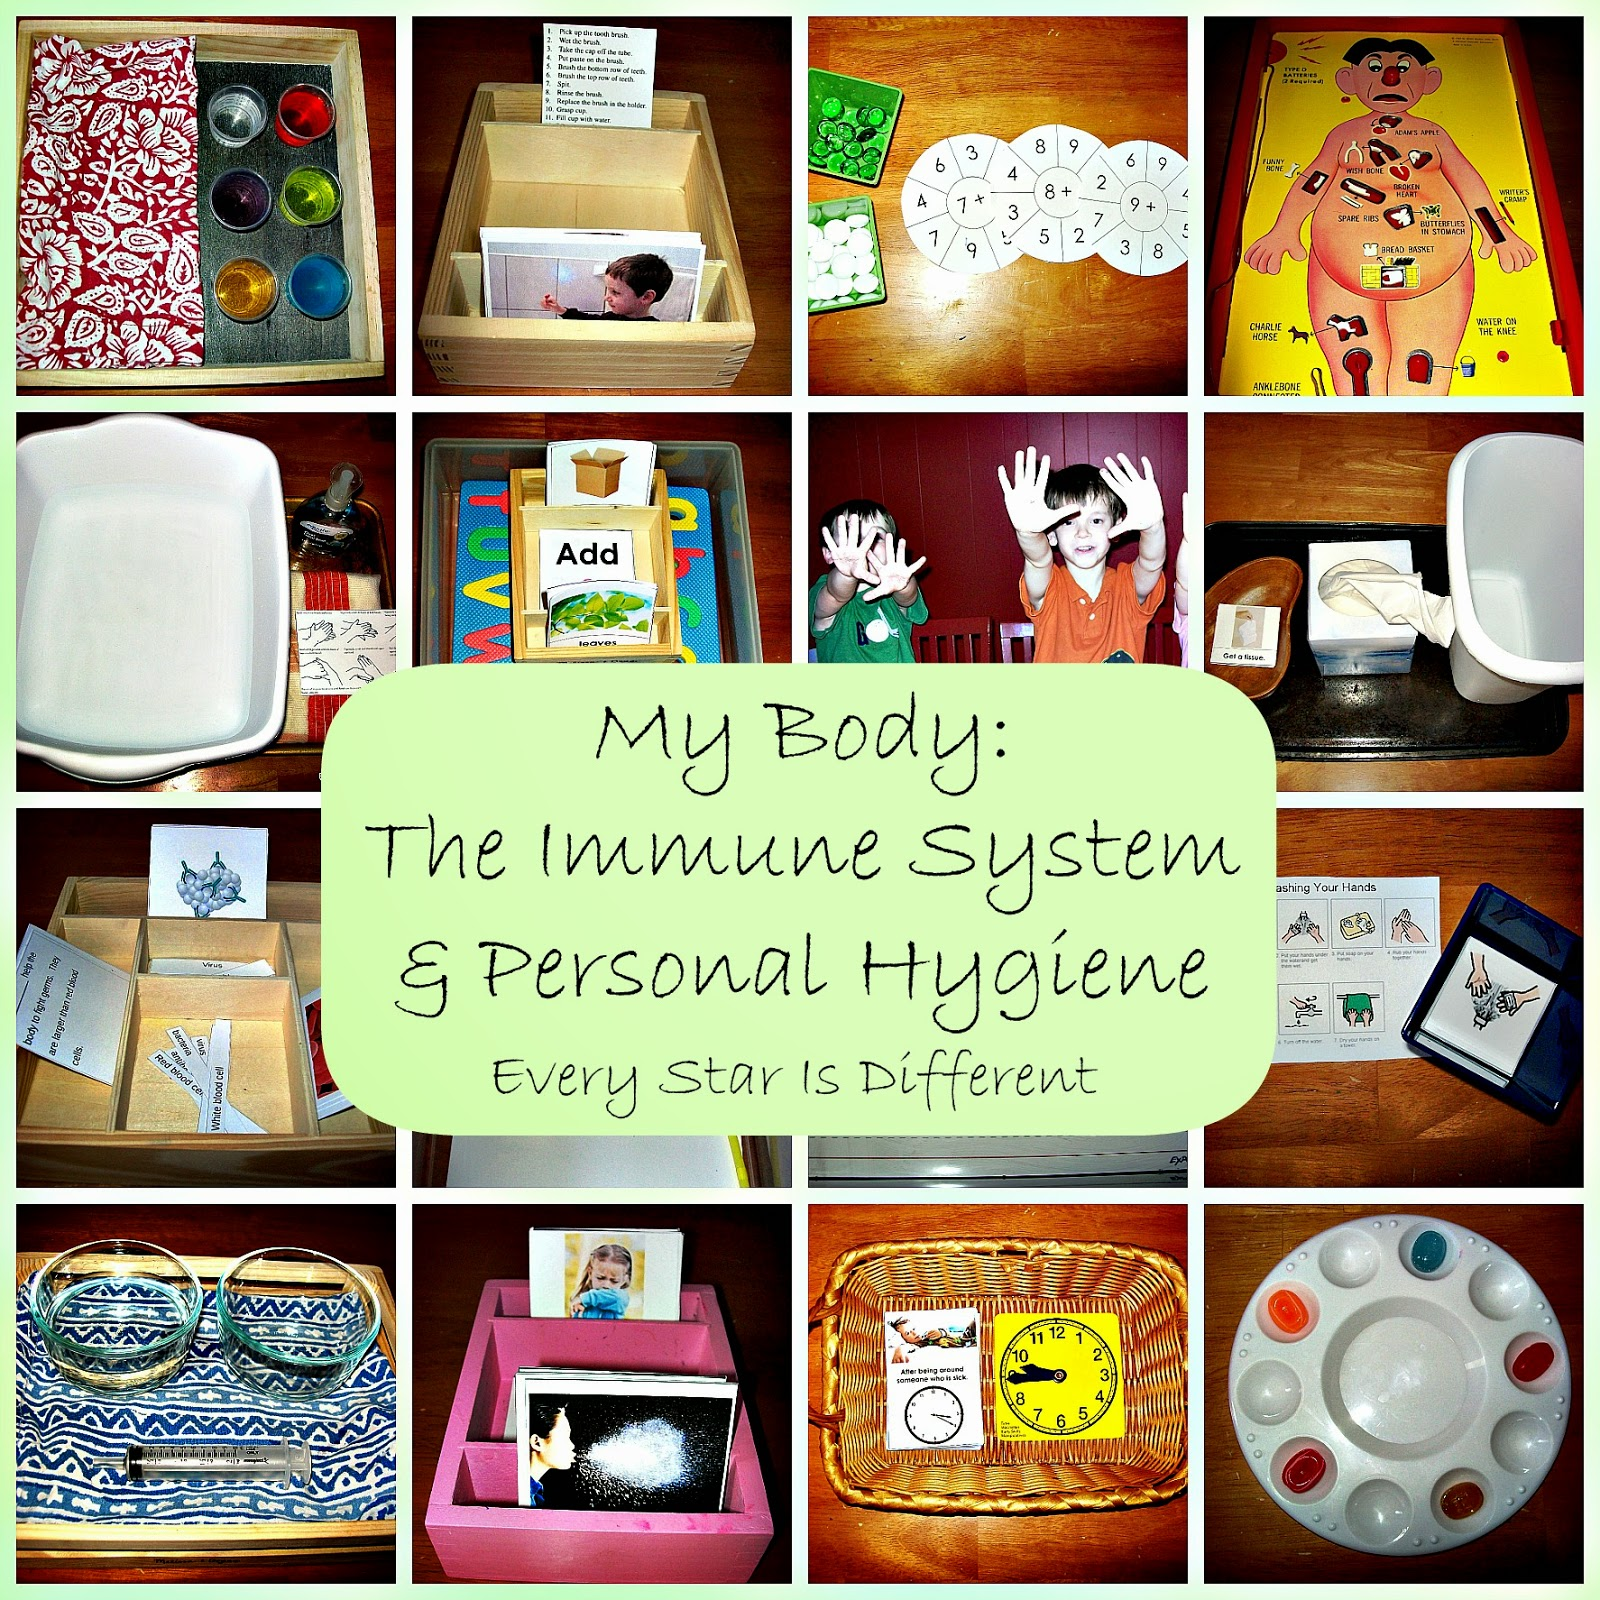 The Body: The Immune System and Personal Hygiene